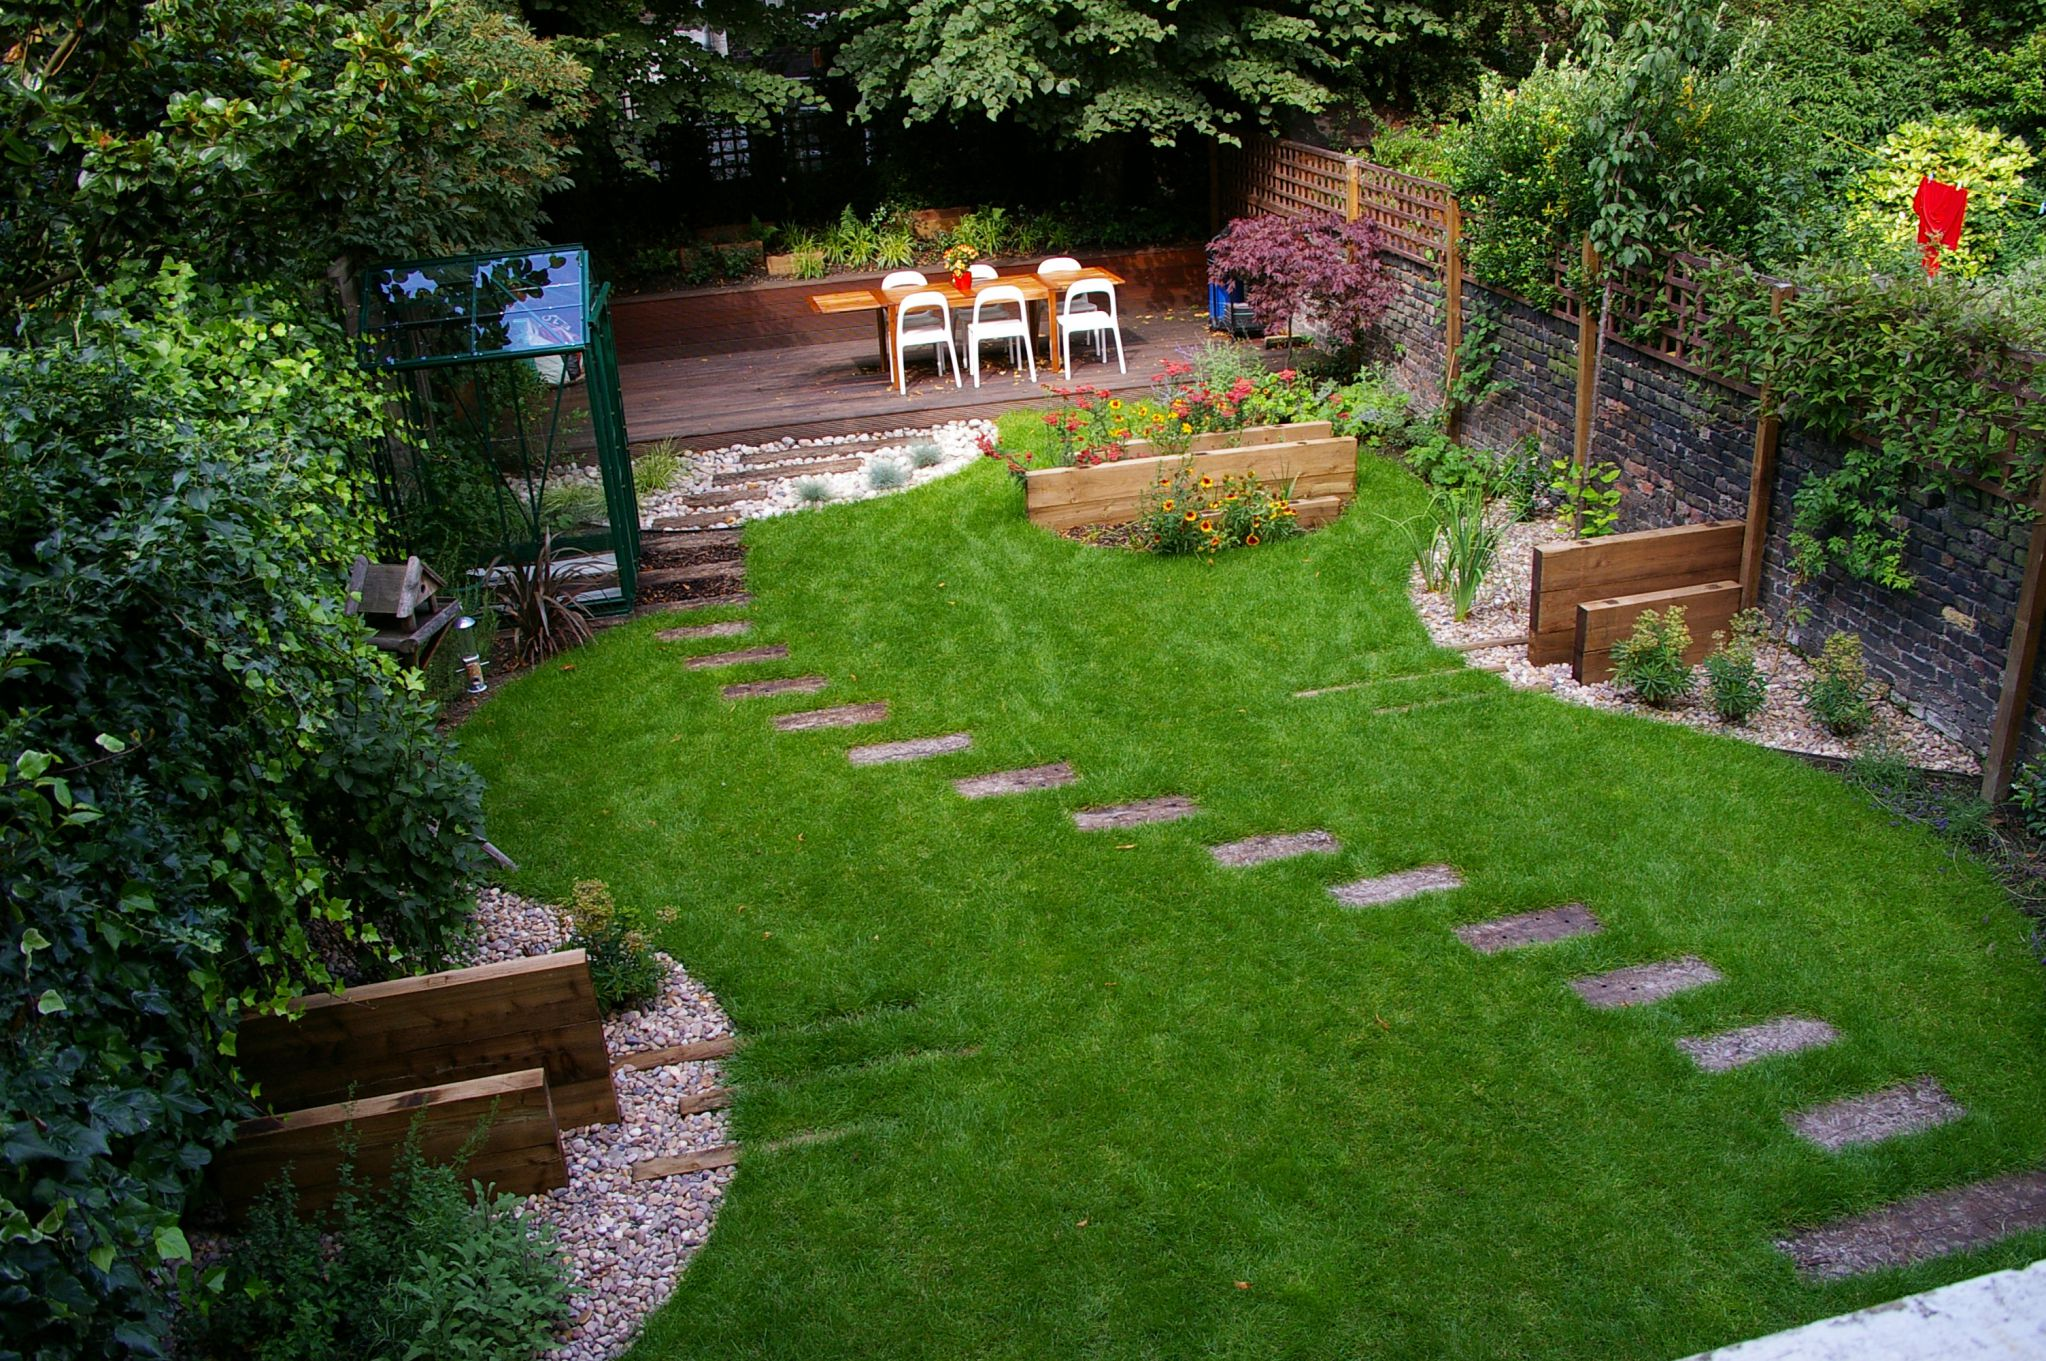 Awesome Backyard Privacy Ideas With Beautiful Garden Also Lavish Deck Plus  Chic Furniture